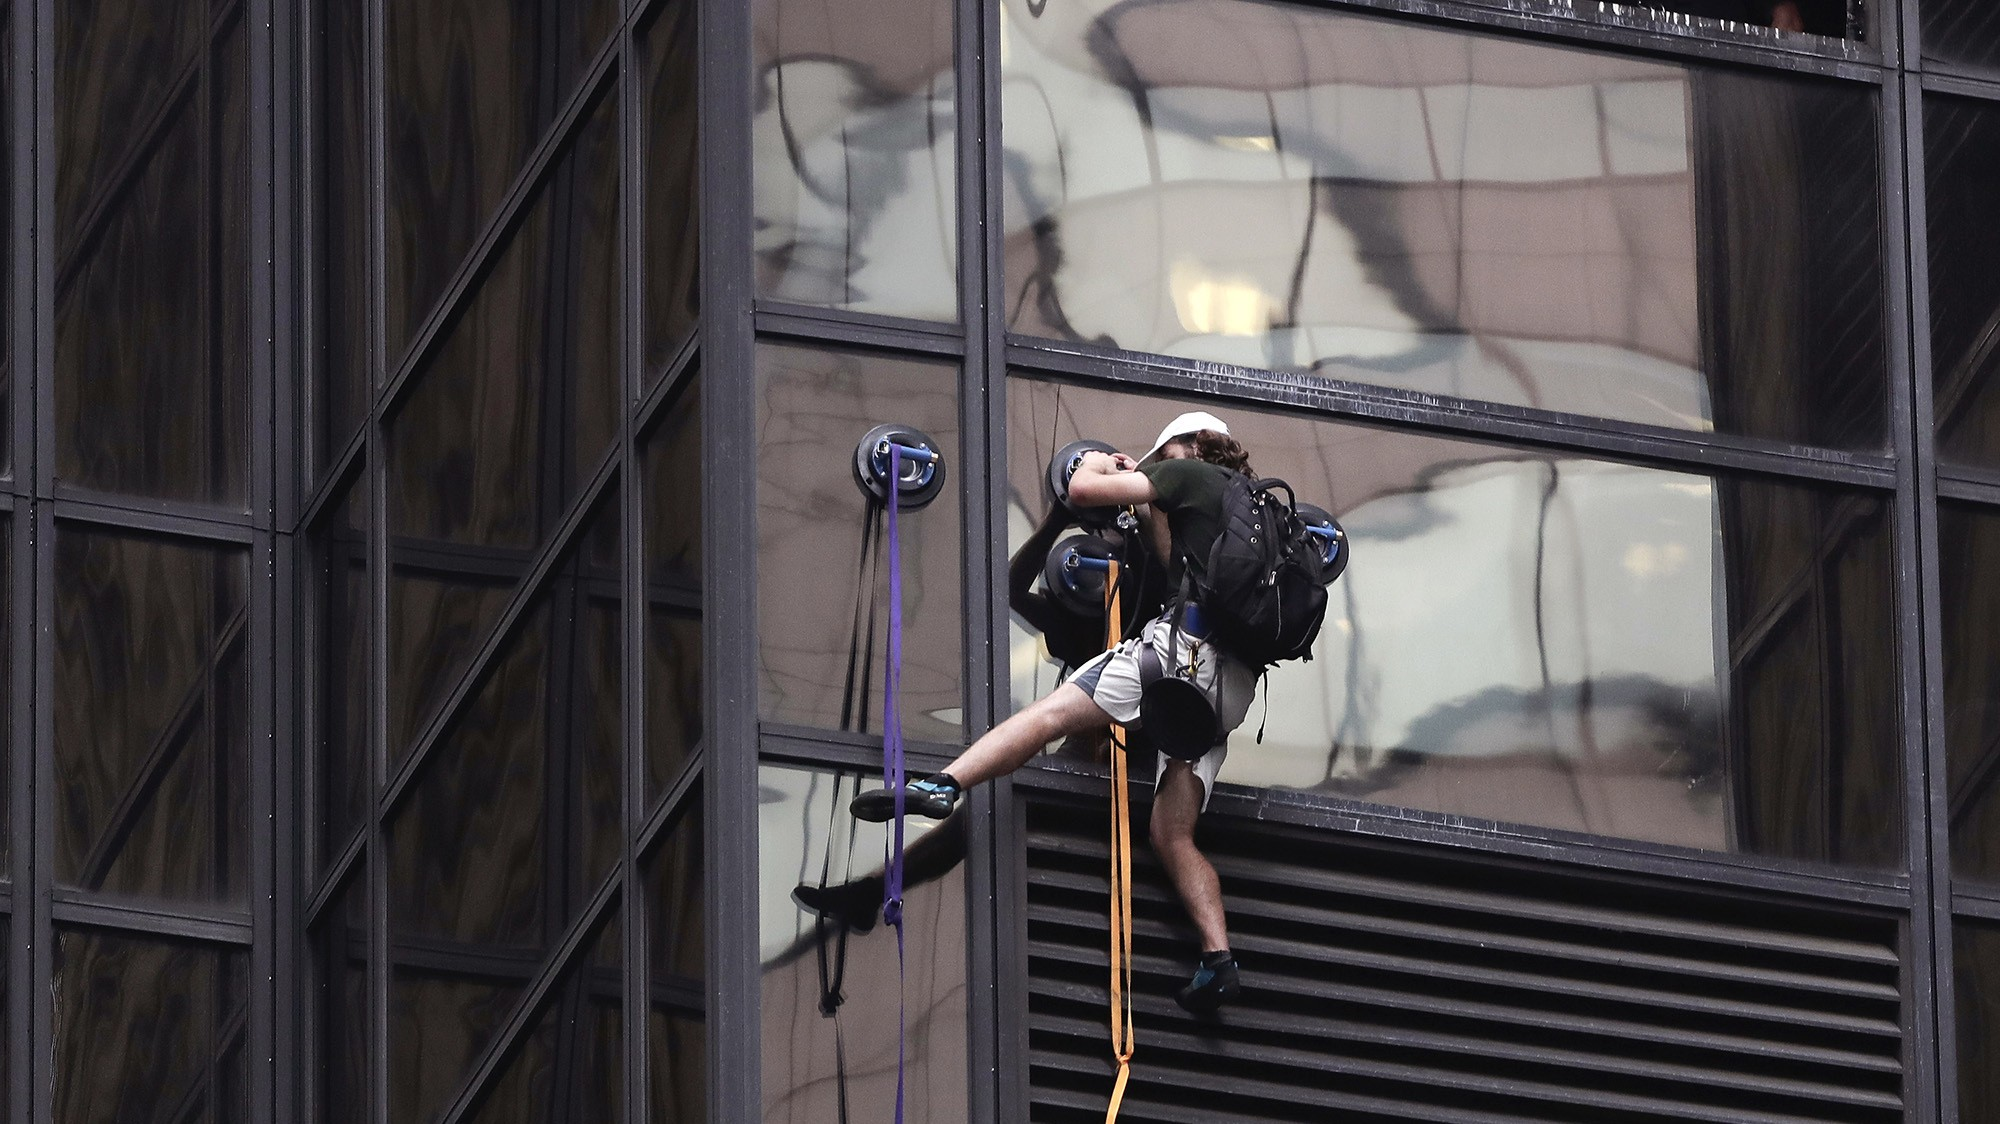 Man tries to scale Trump Tower with suction cups, gets arrested